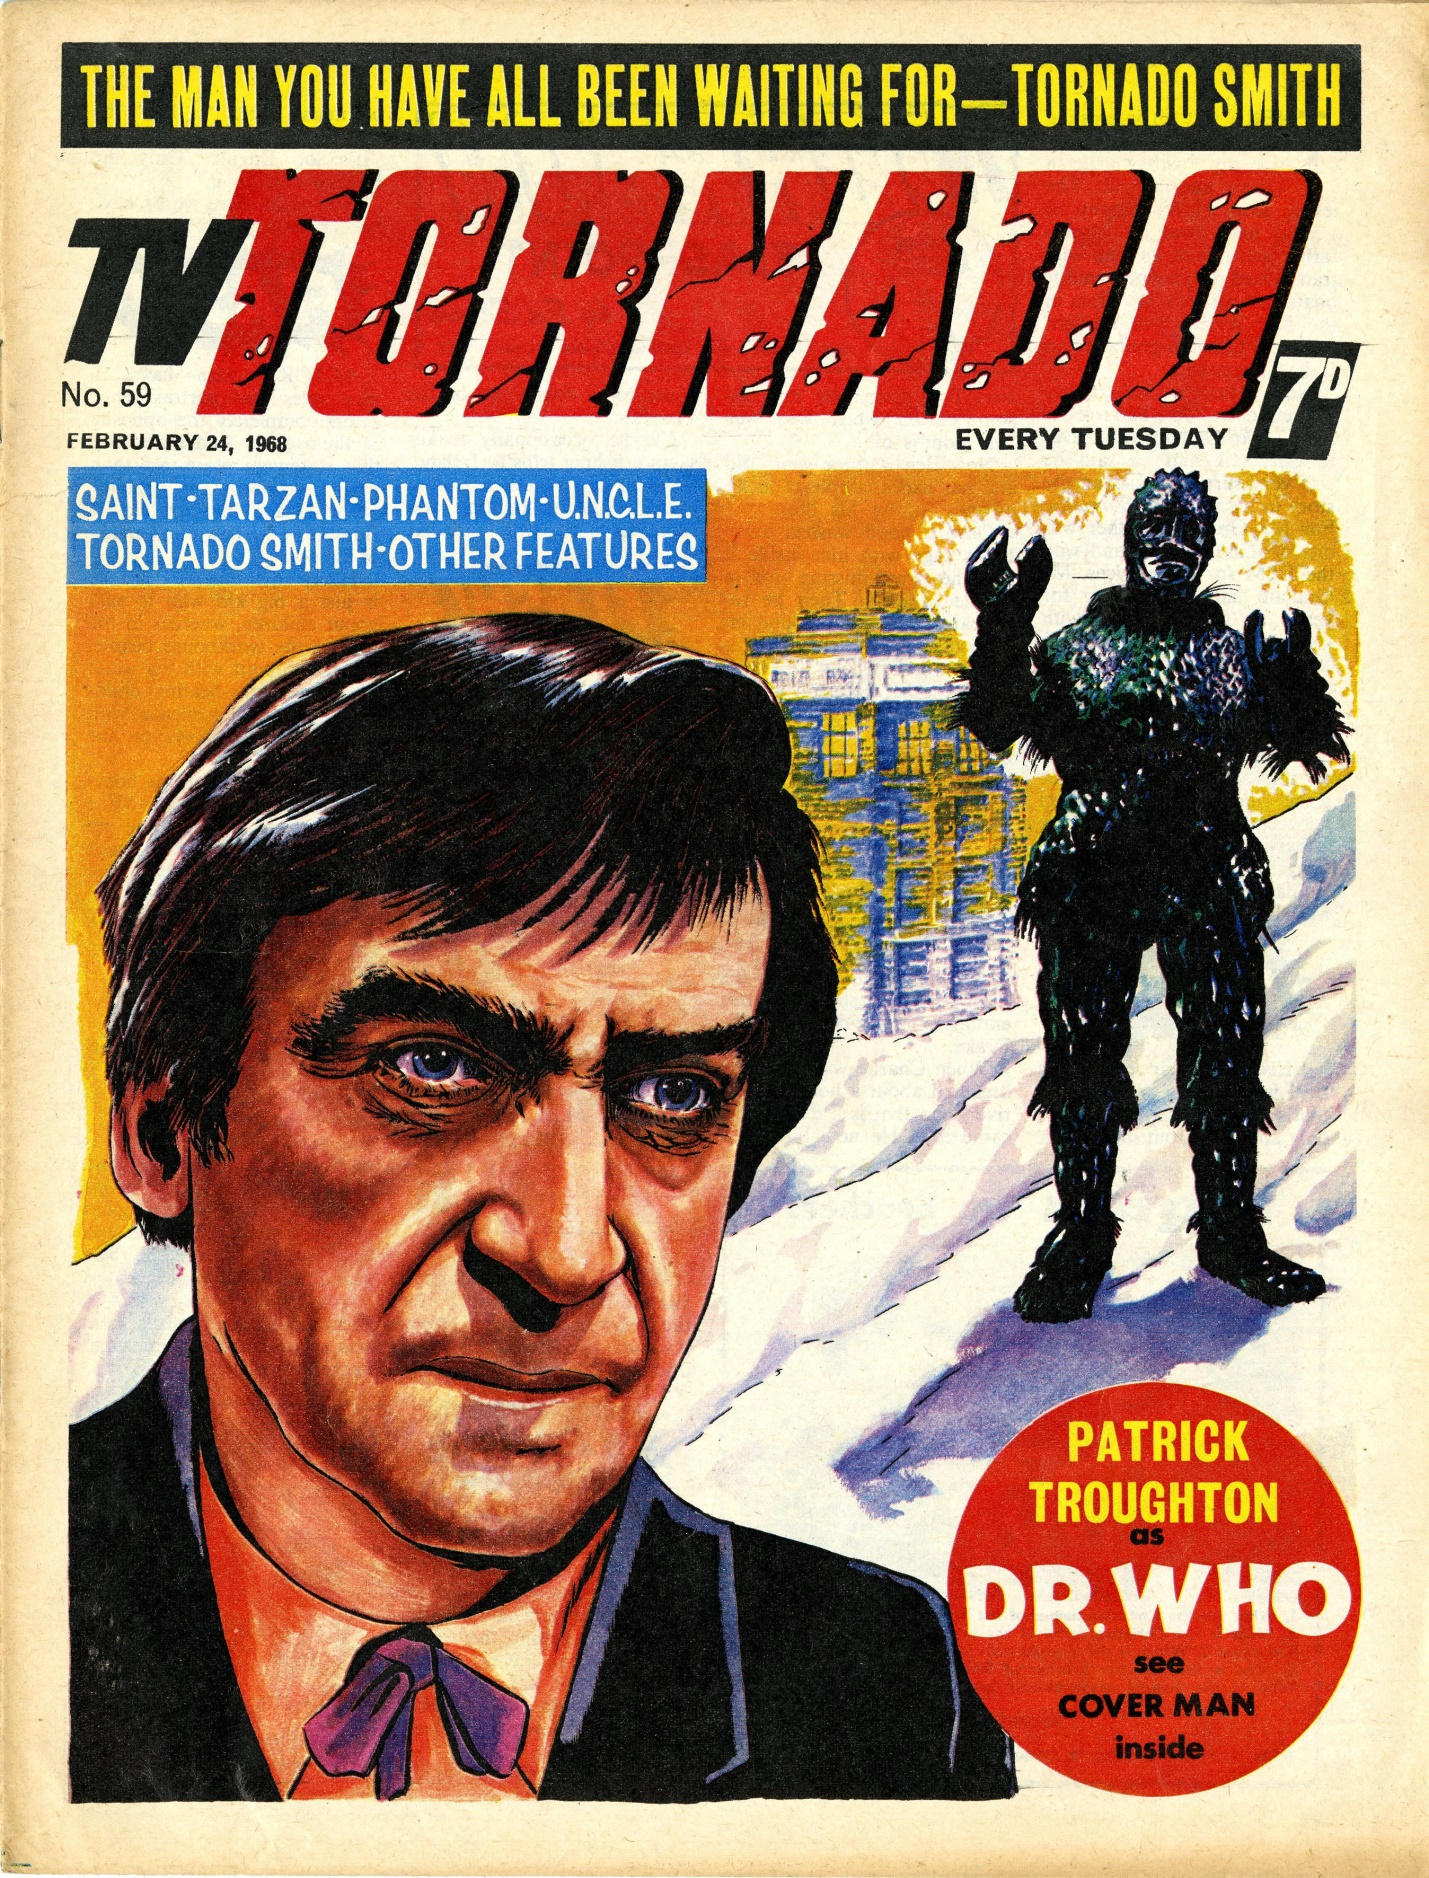 TV Tornado no. 59, 24 February 1968 with Doctor Who cover art by Mick Anglo